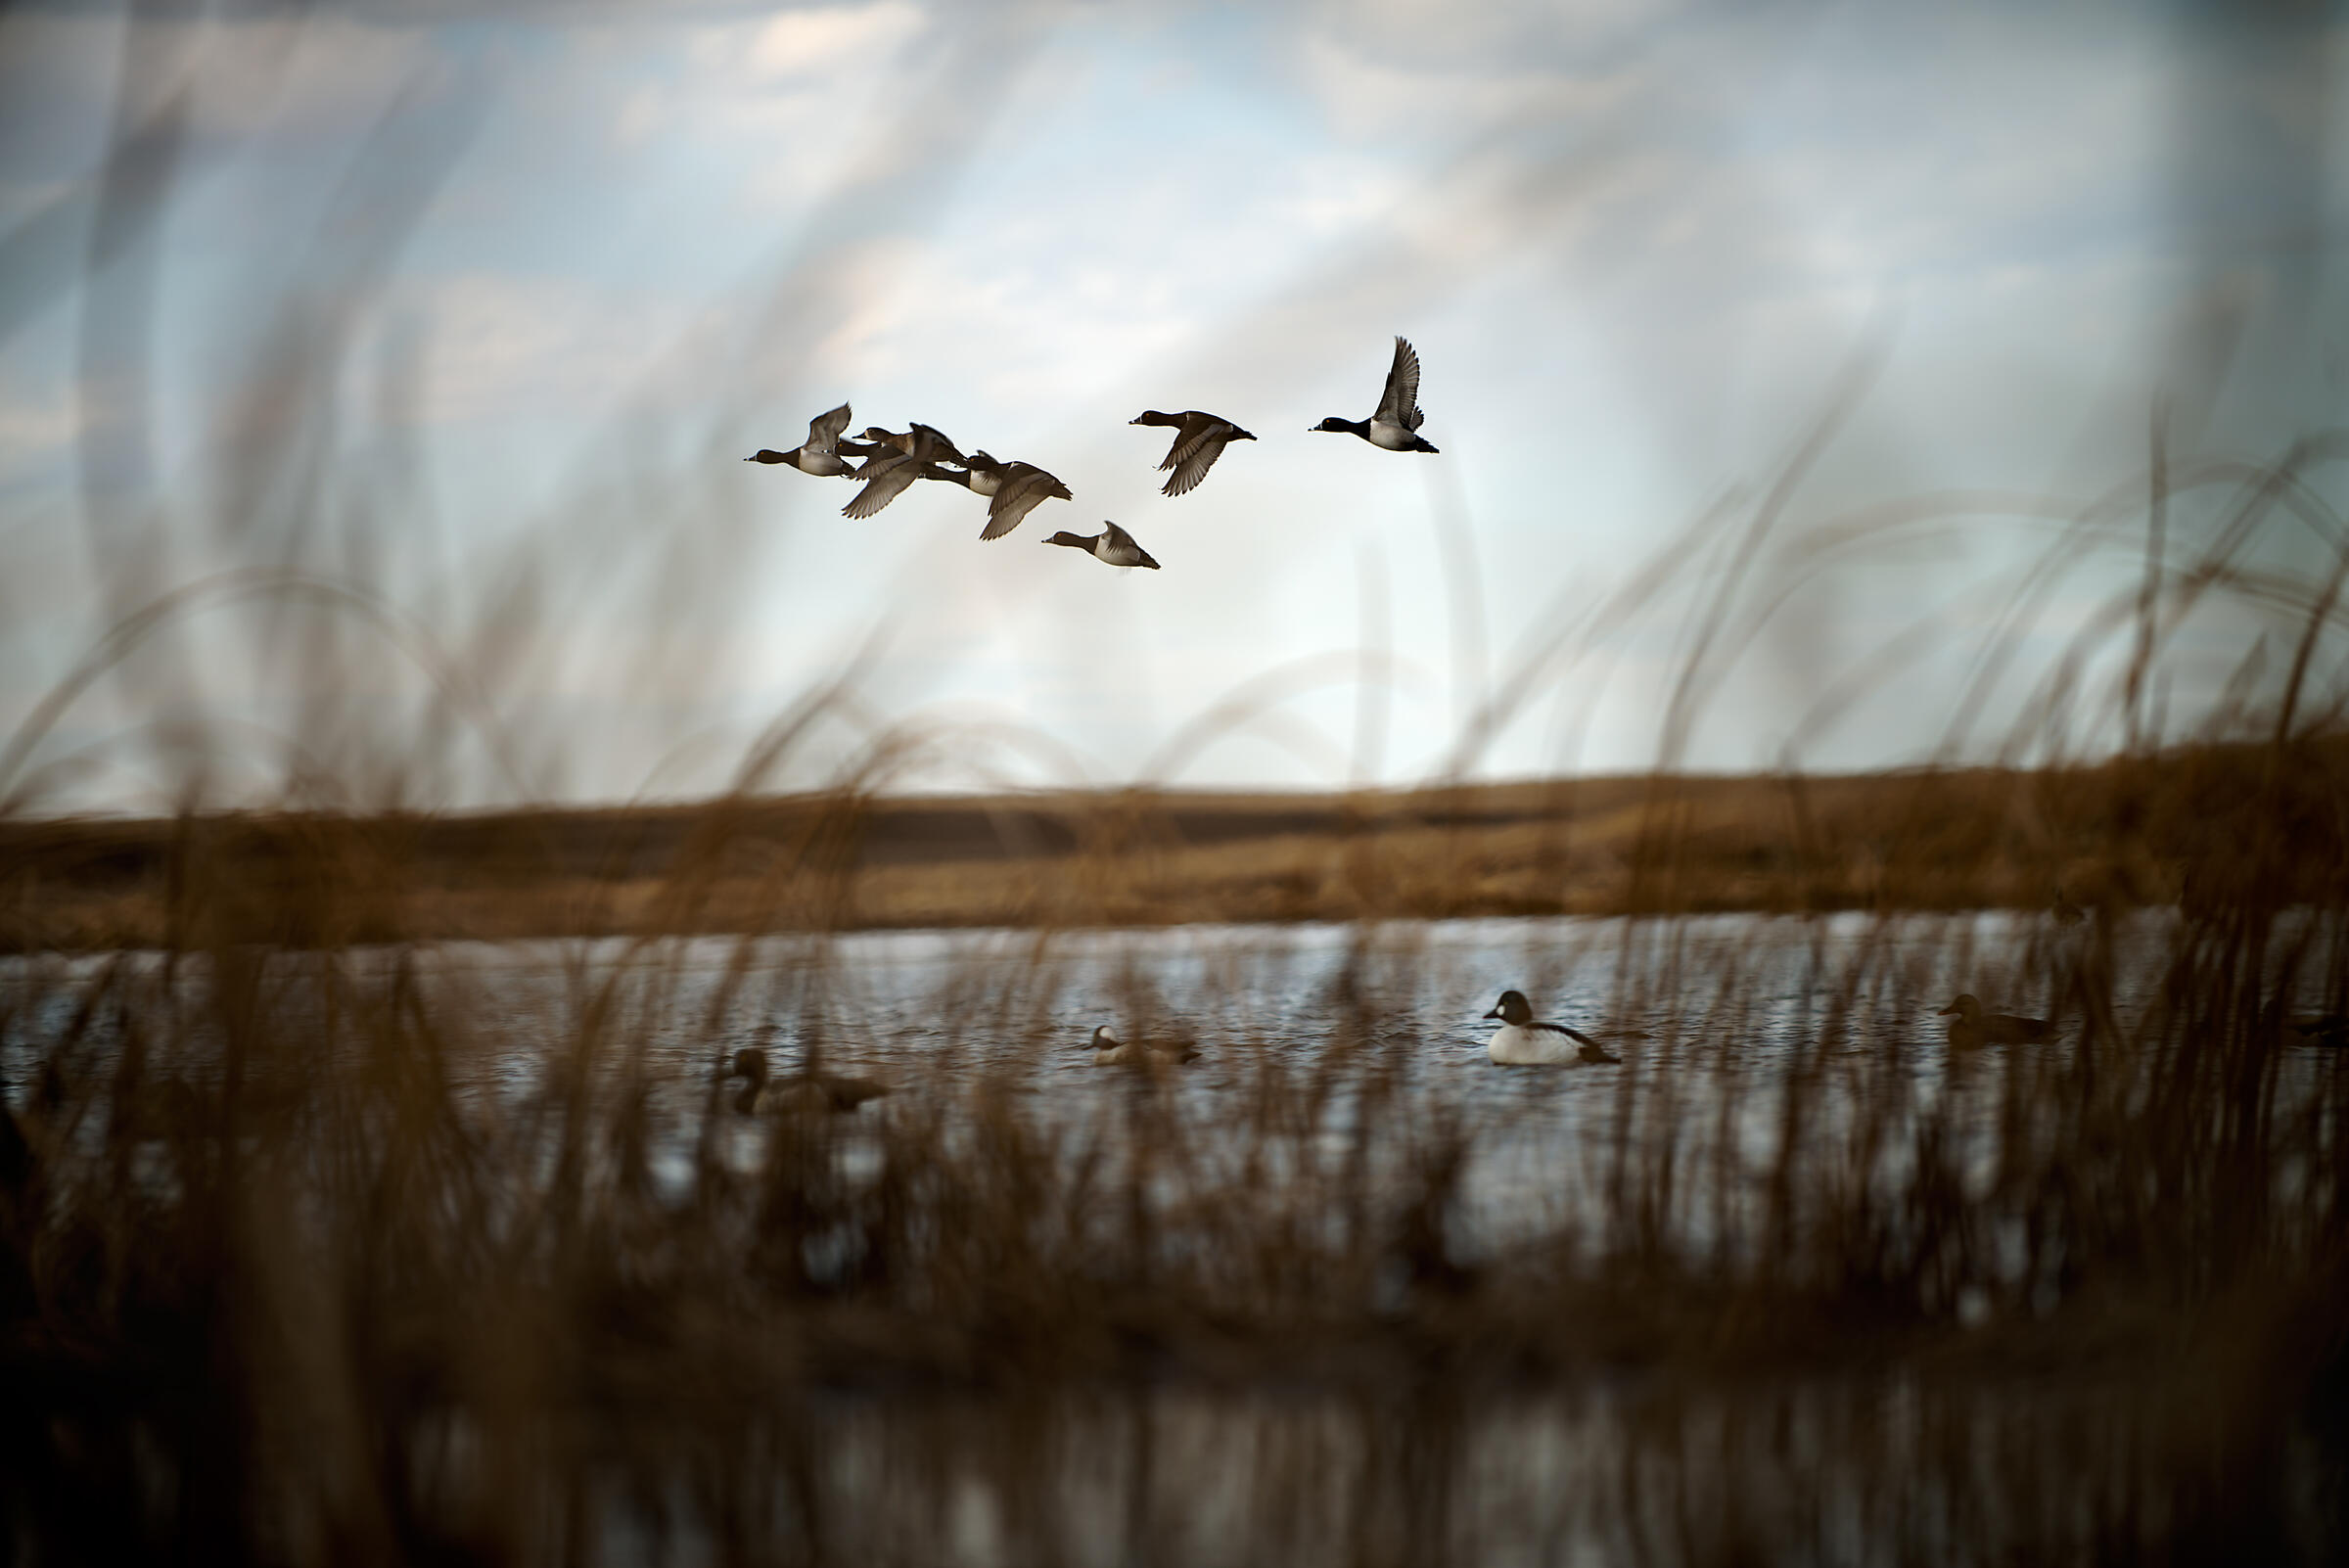 The Fish and Wildlife Service uses proceeds from the sale of duck stamps to purchase and protect habitat like this in the National Wildlife Refuge System. Jon Lowenstein